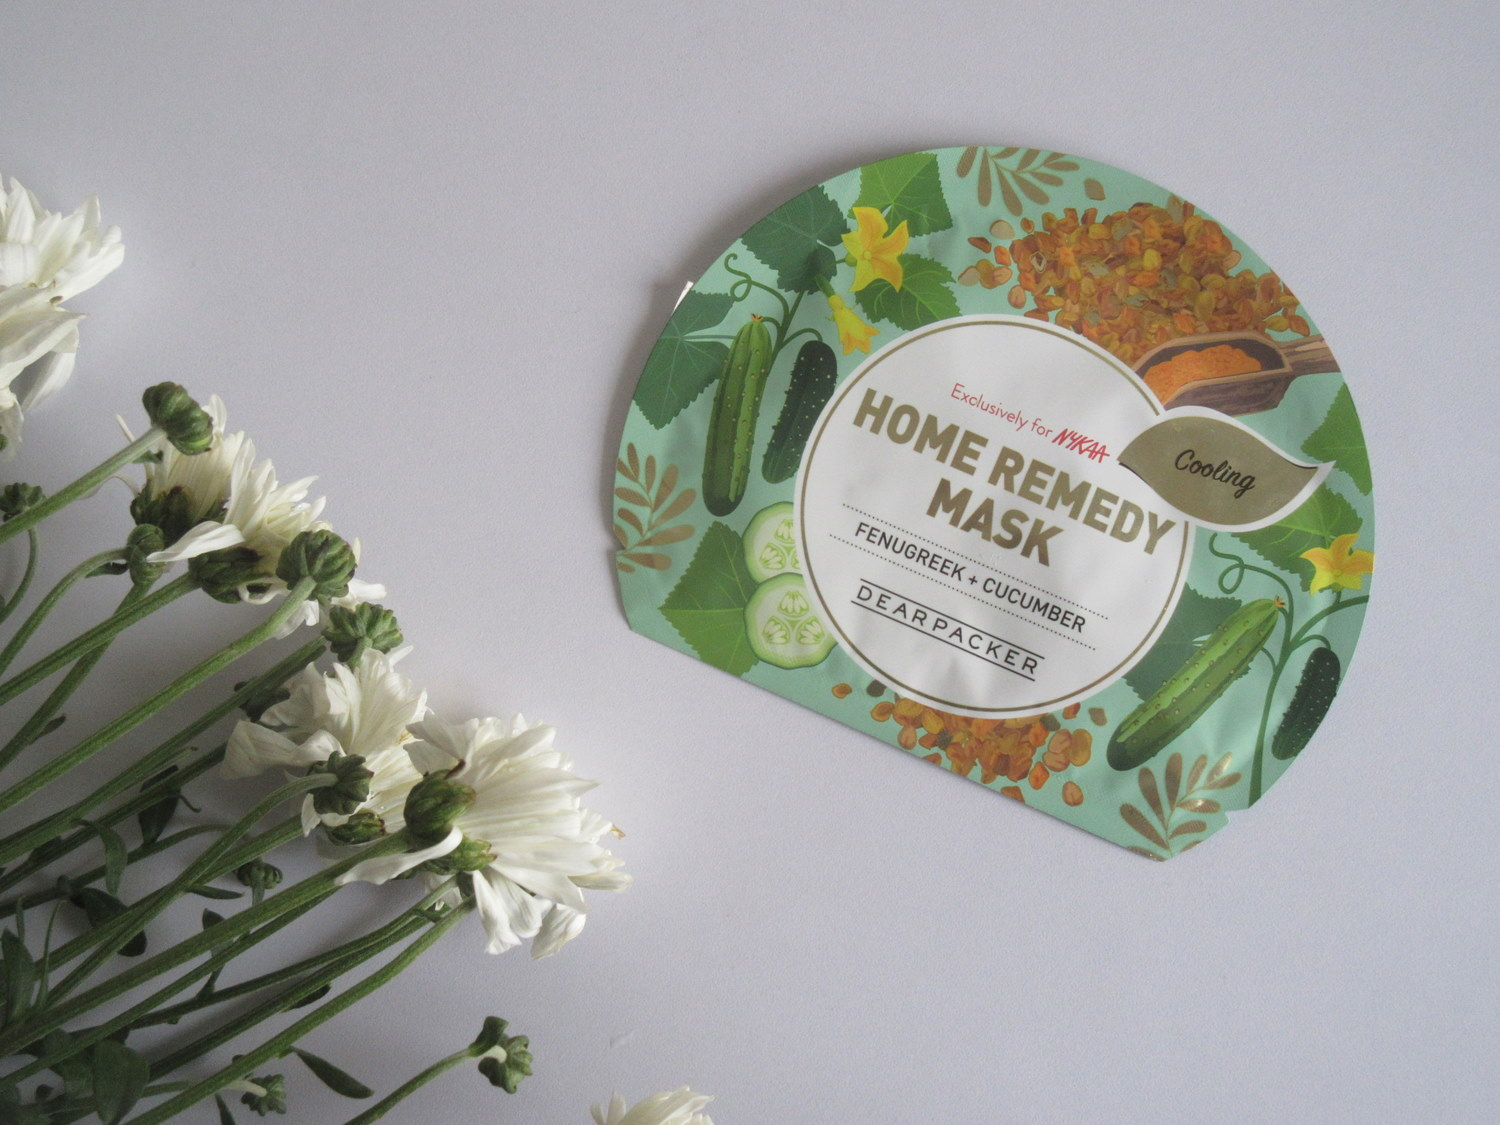 Dear Packer Home Remedy Mask in Fenugreek Cucumber